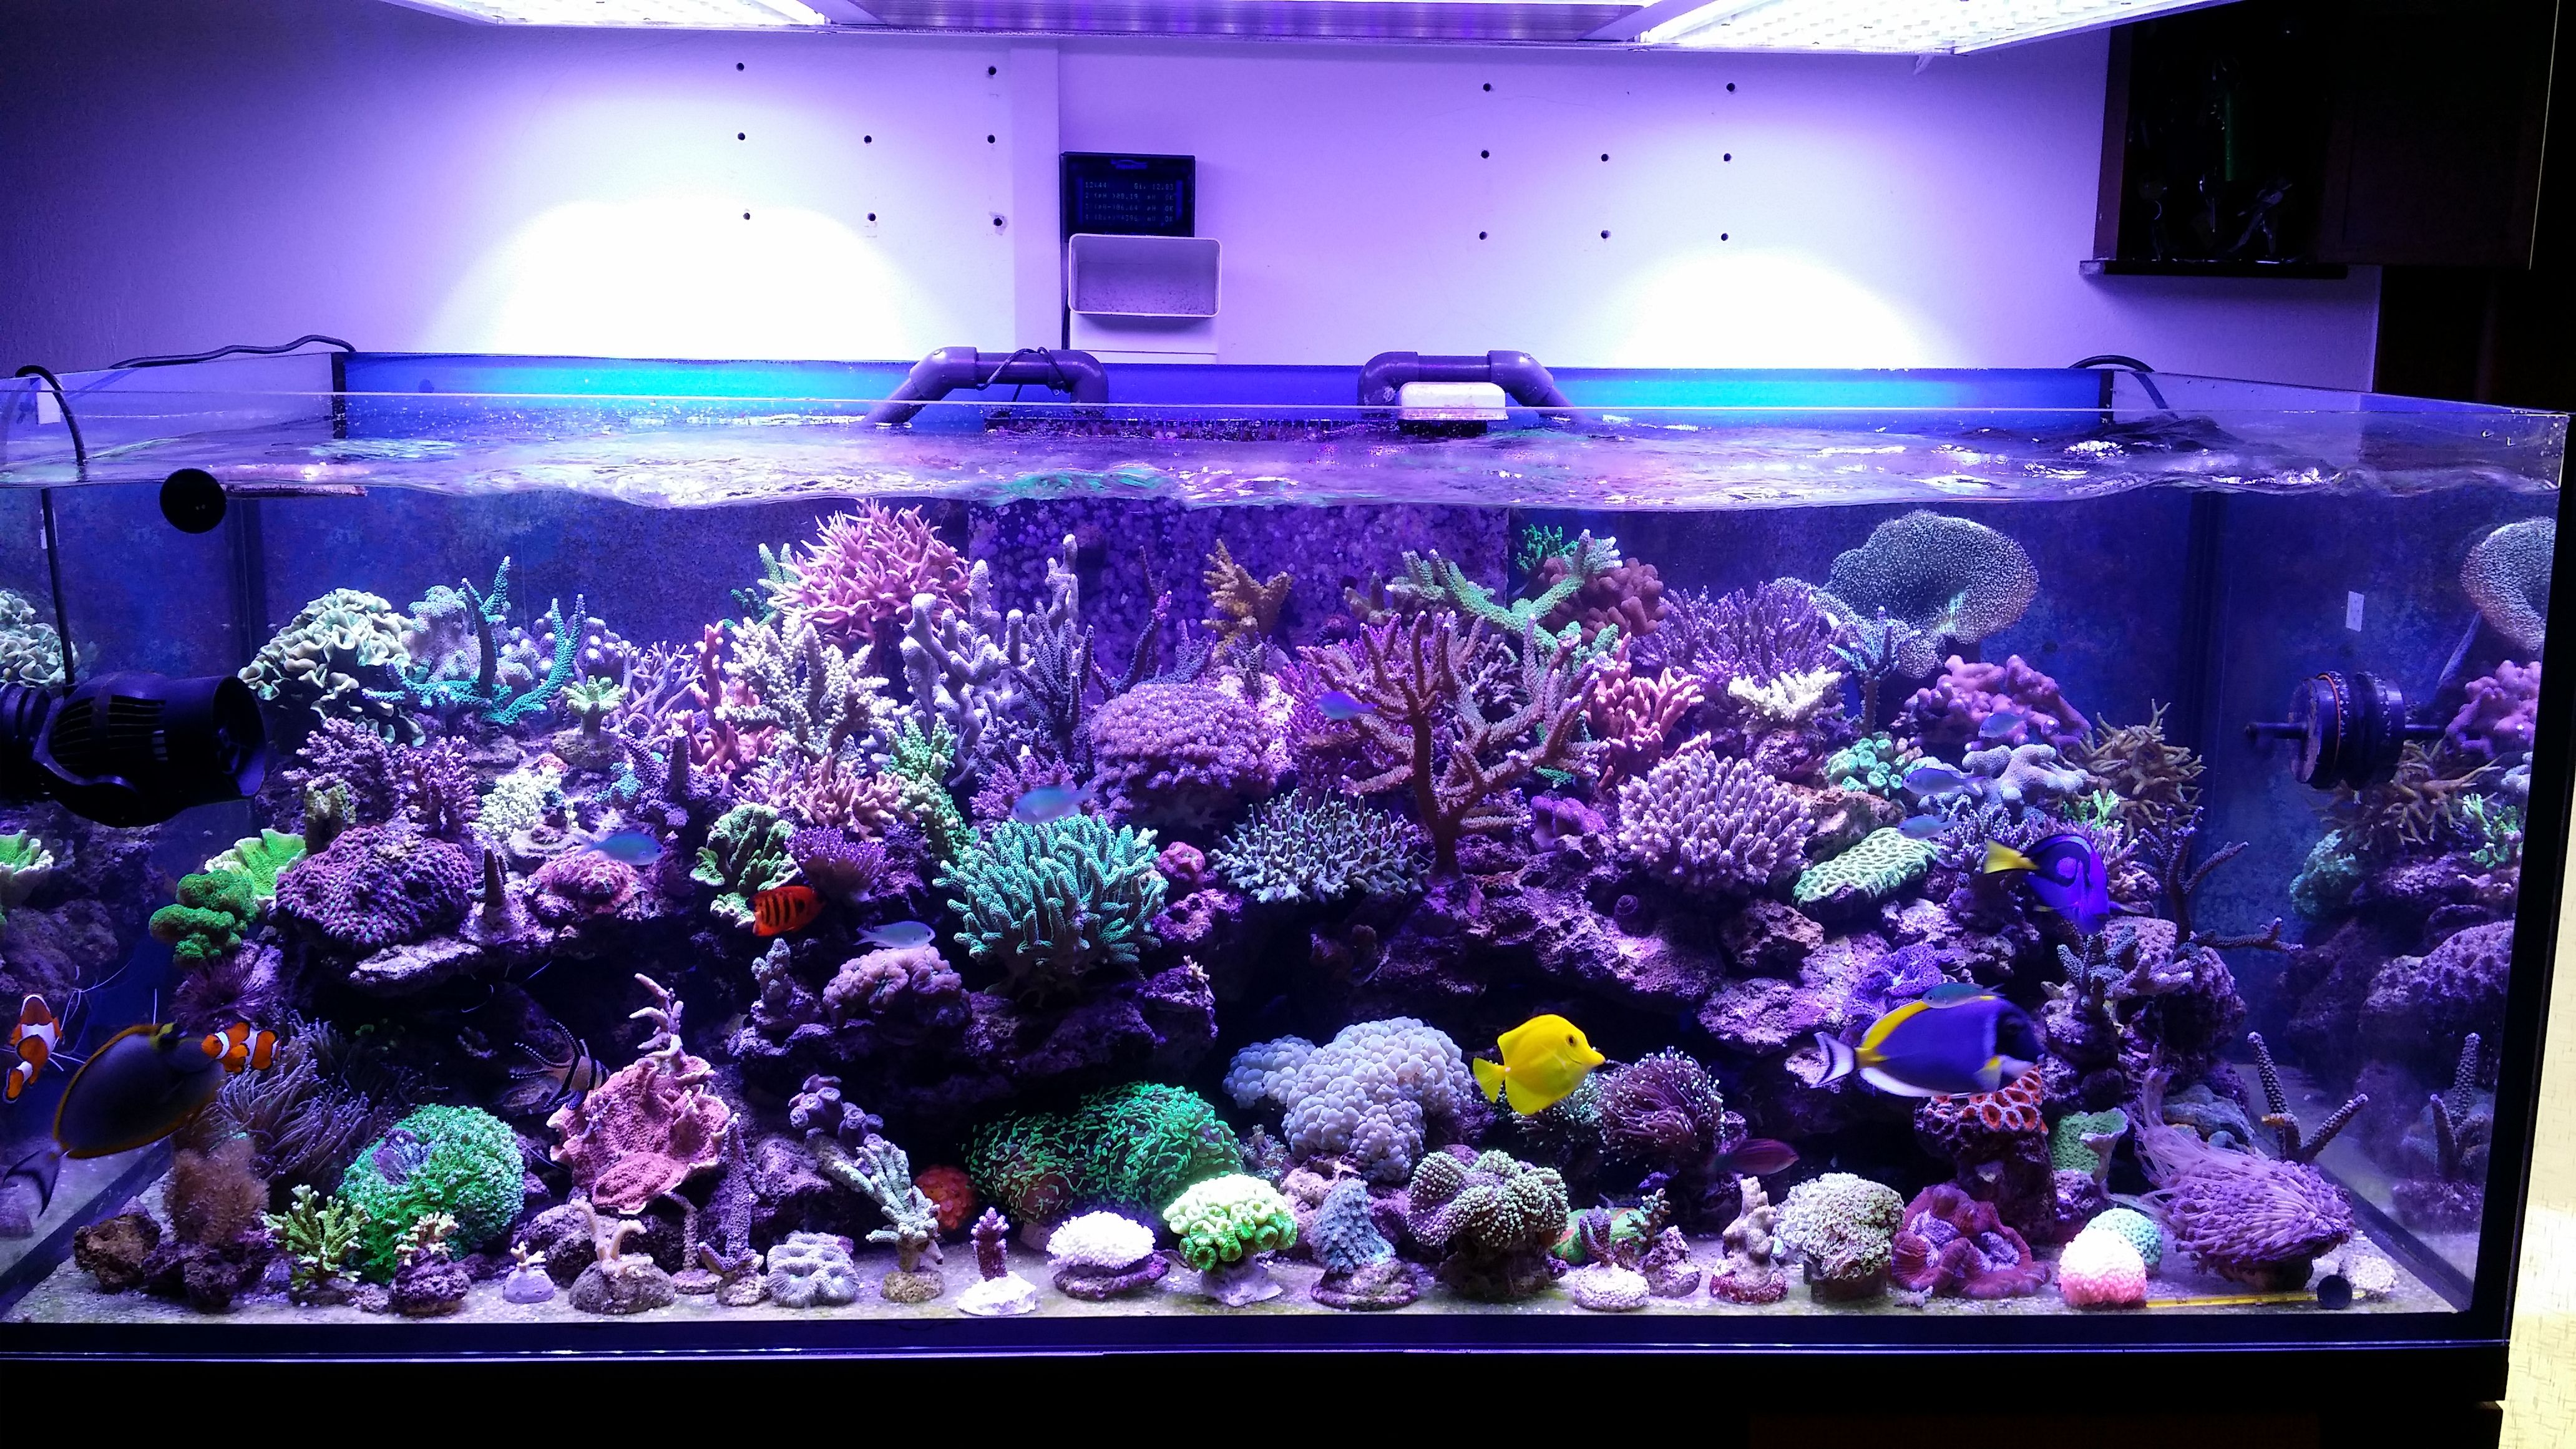 ... Find the Specially designed marine aquarium led lights to accommodate your saltwater tank adjustable full spectrum light suitable for coral reef growth ... & Find Marine Aquarium Led Lights - Aqua Led http://www.aqualed.com ... azcodes.com